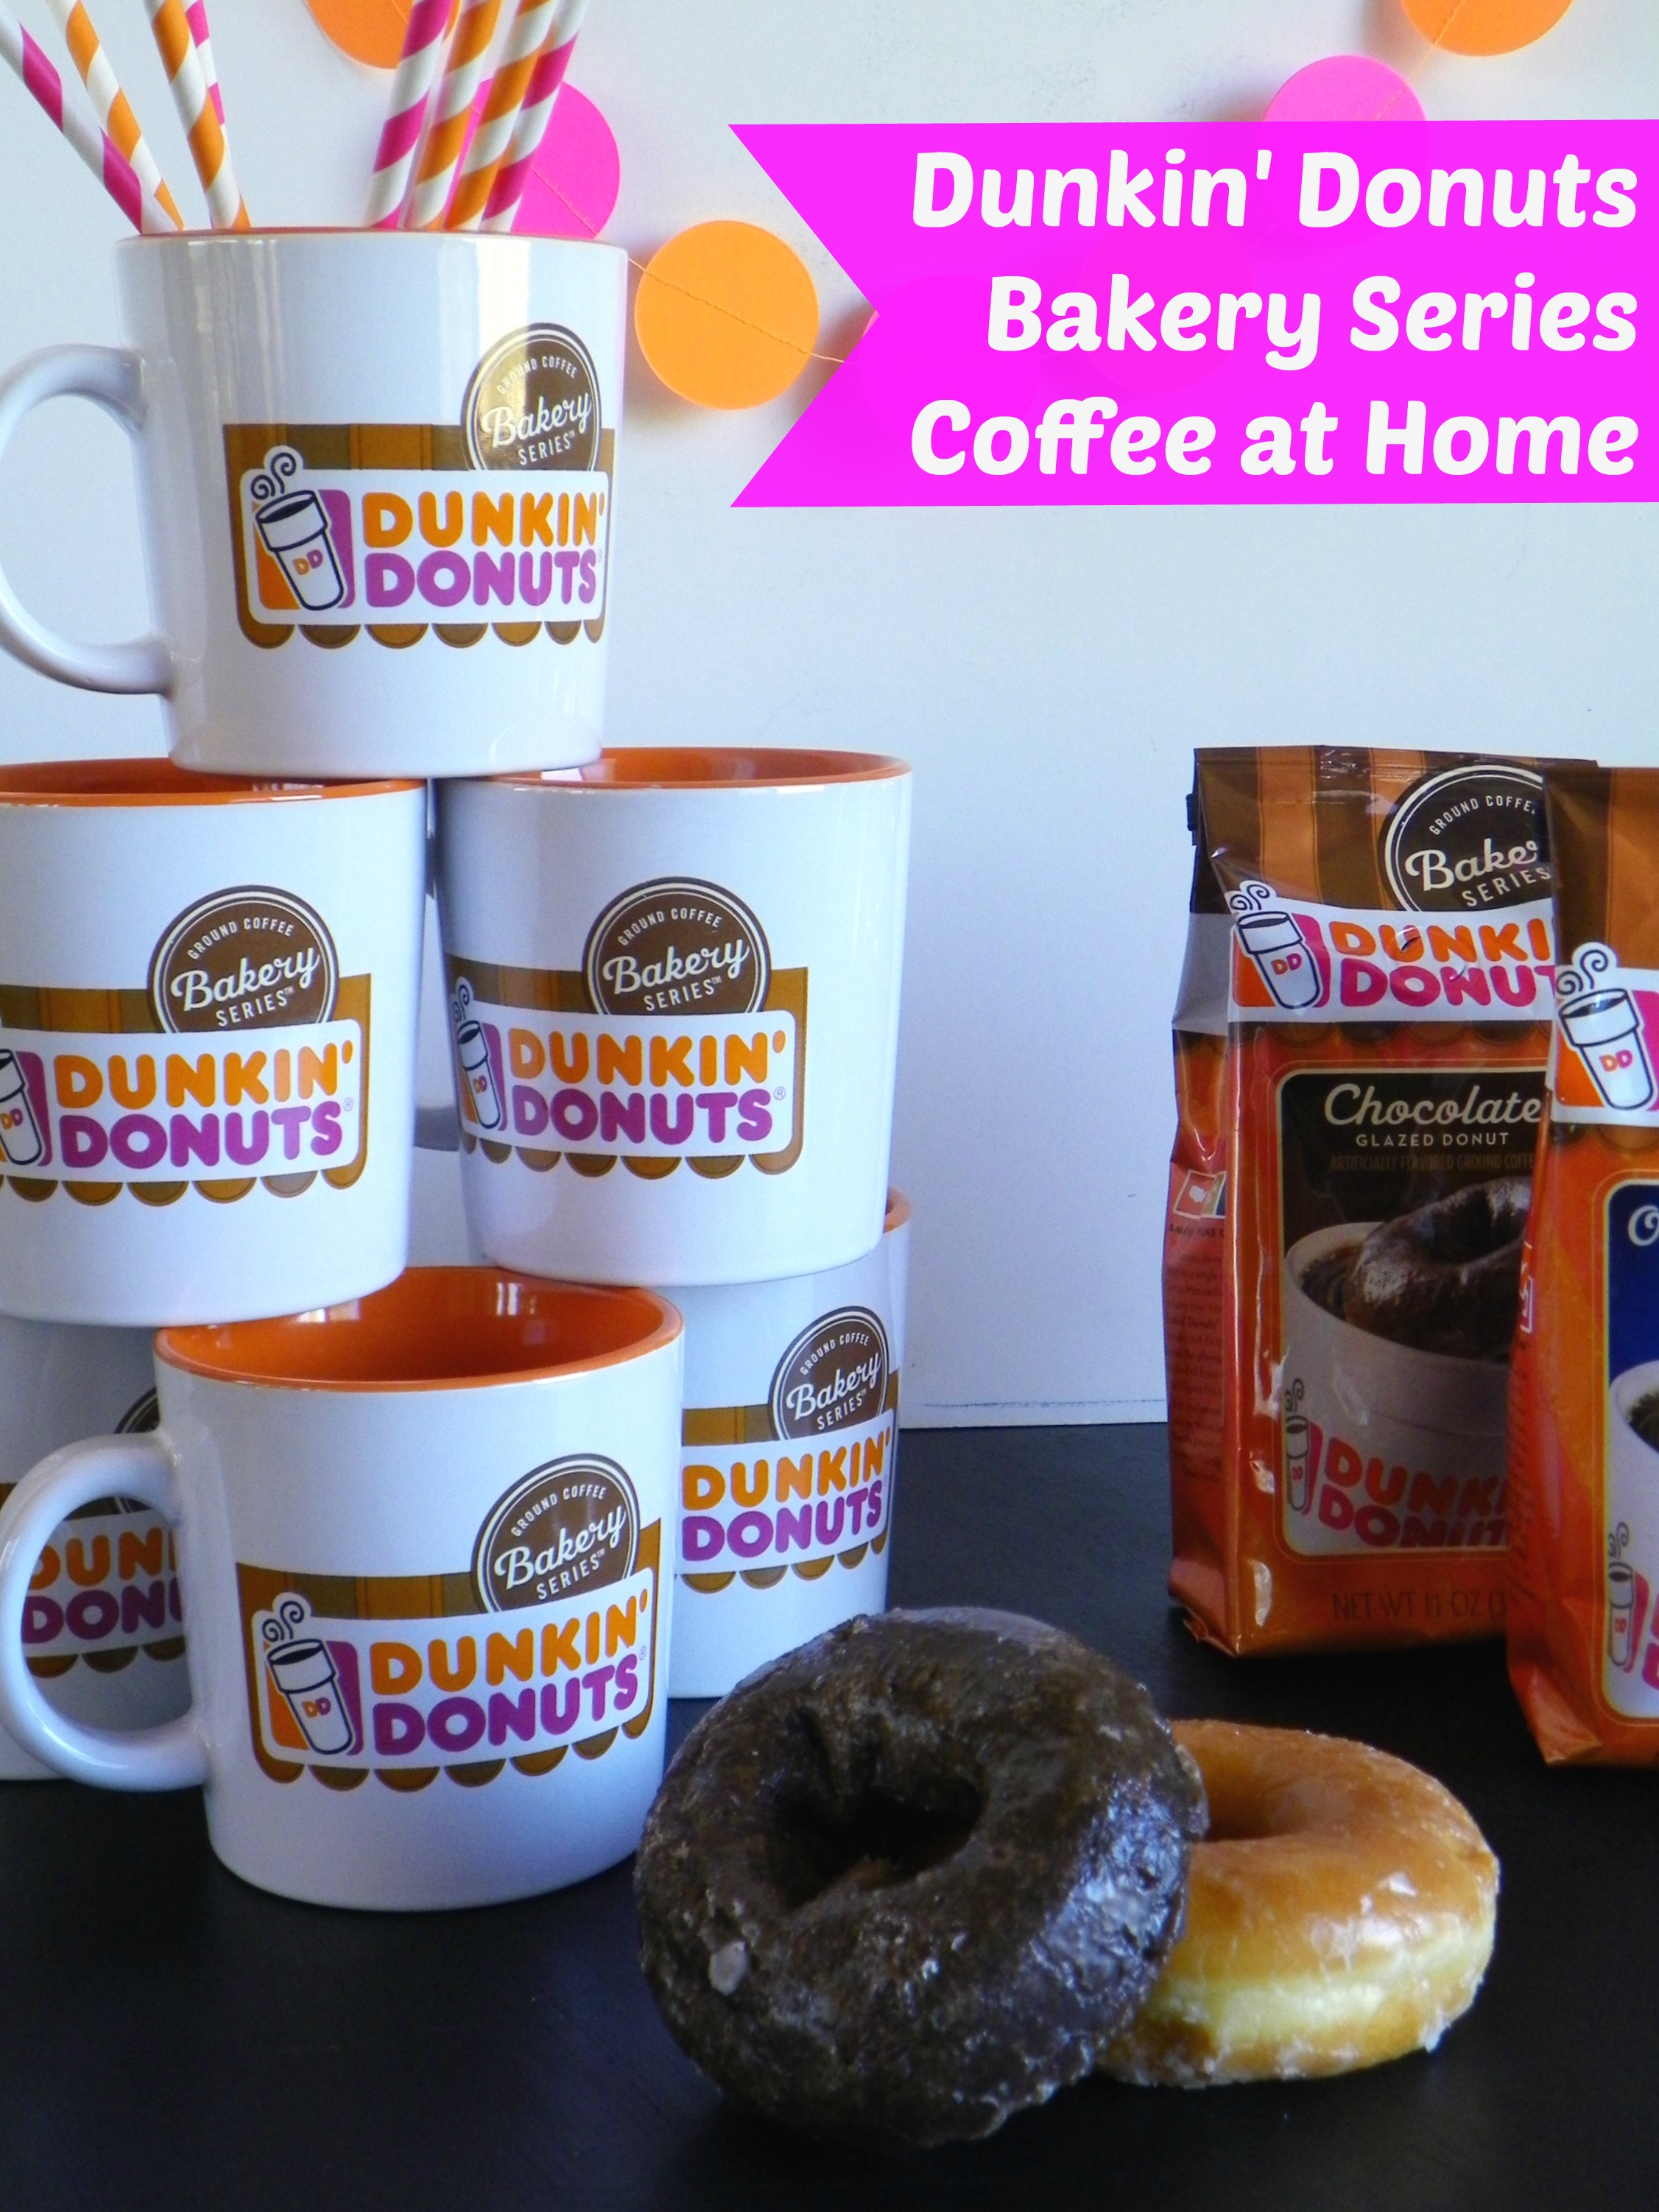 Dunkin Donuts Iced Coffee And Bakery Series Coffee